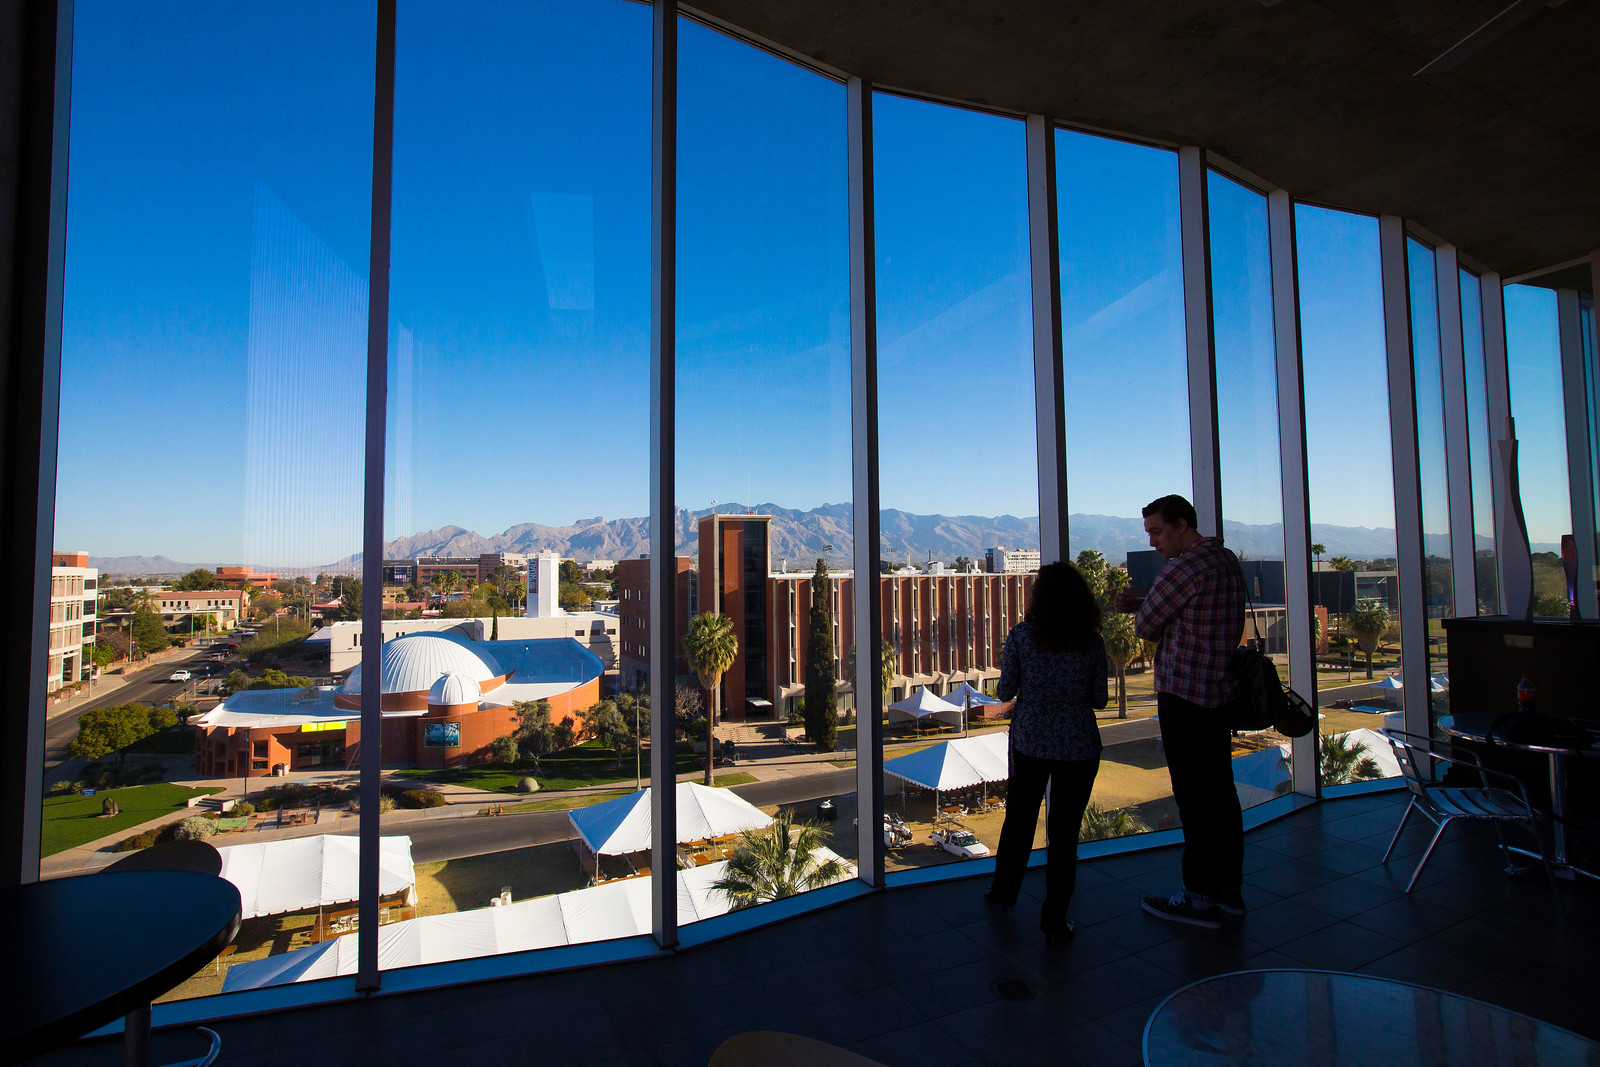 University of Arizona looking out of window